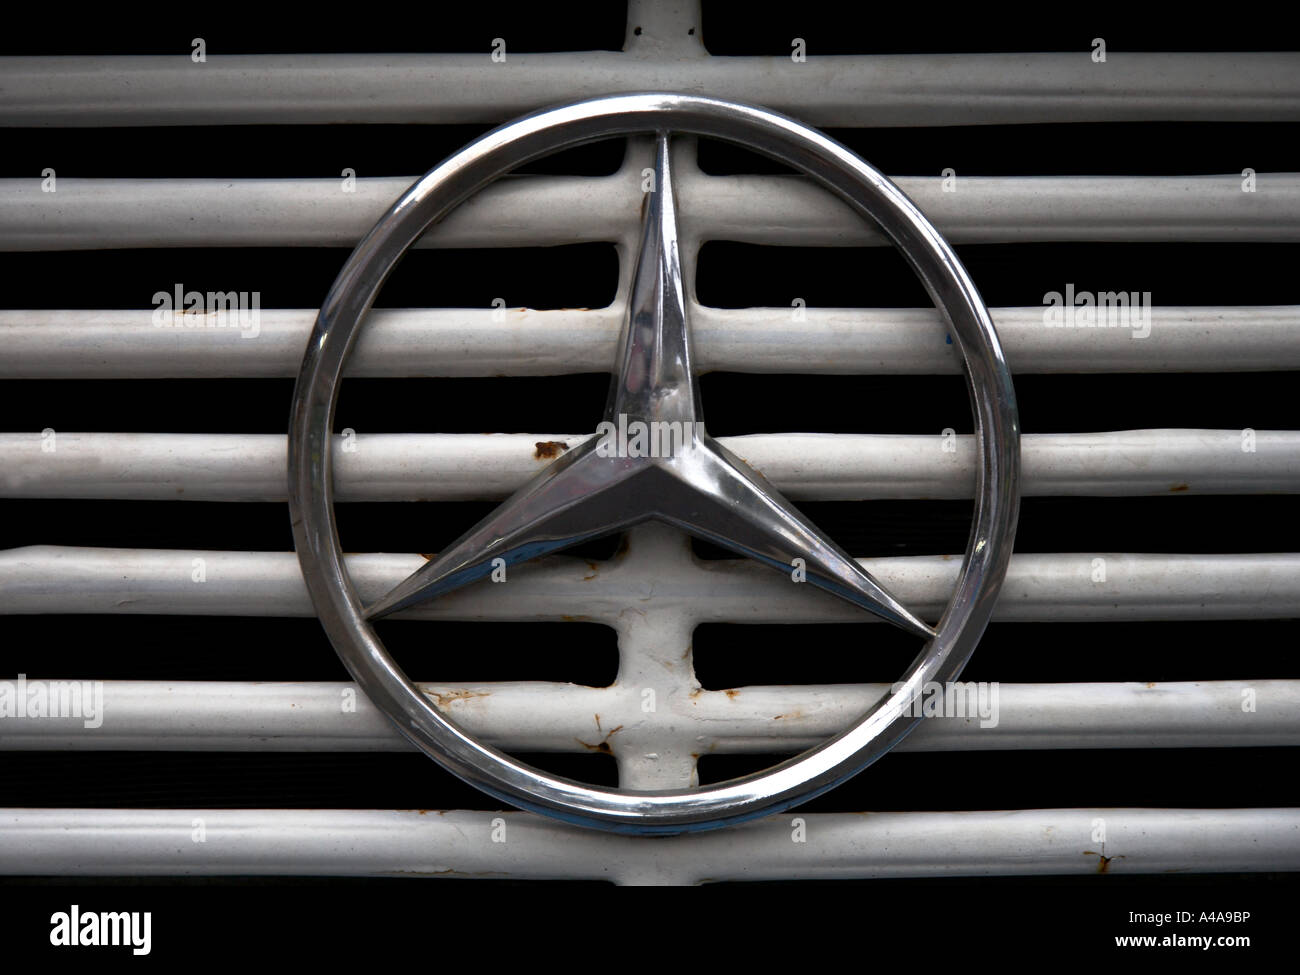 mercedes badge on grill of car - Stock Image